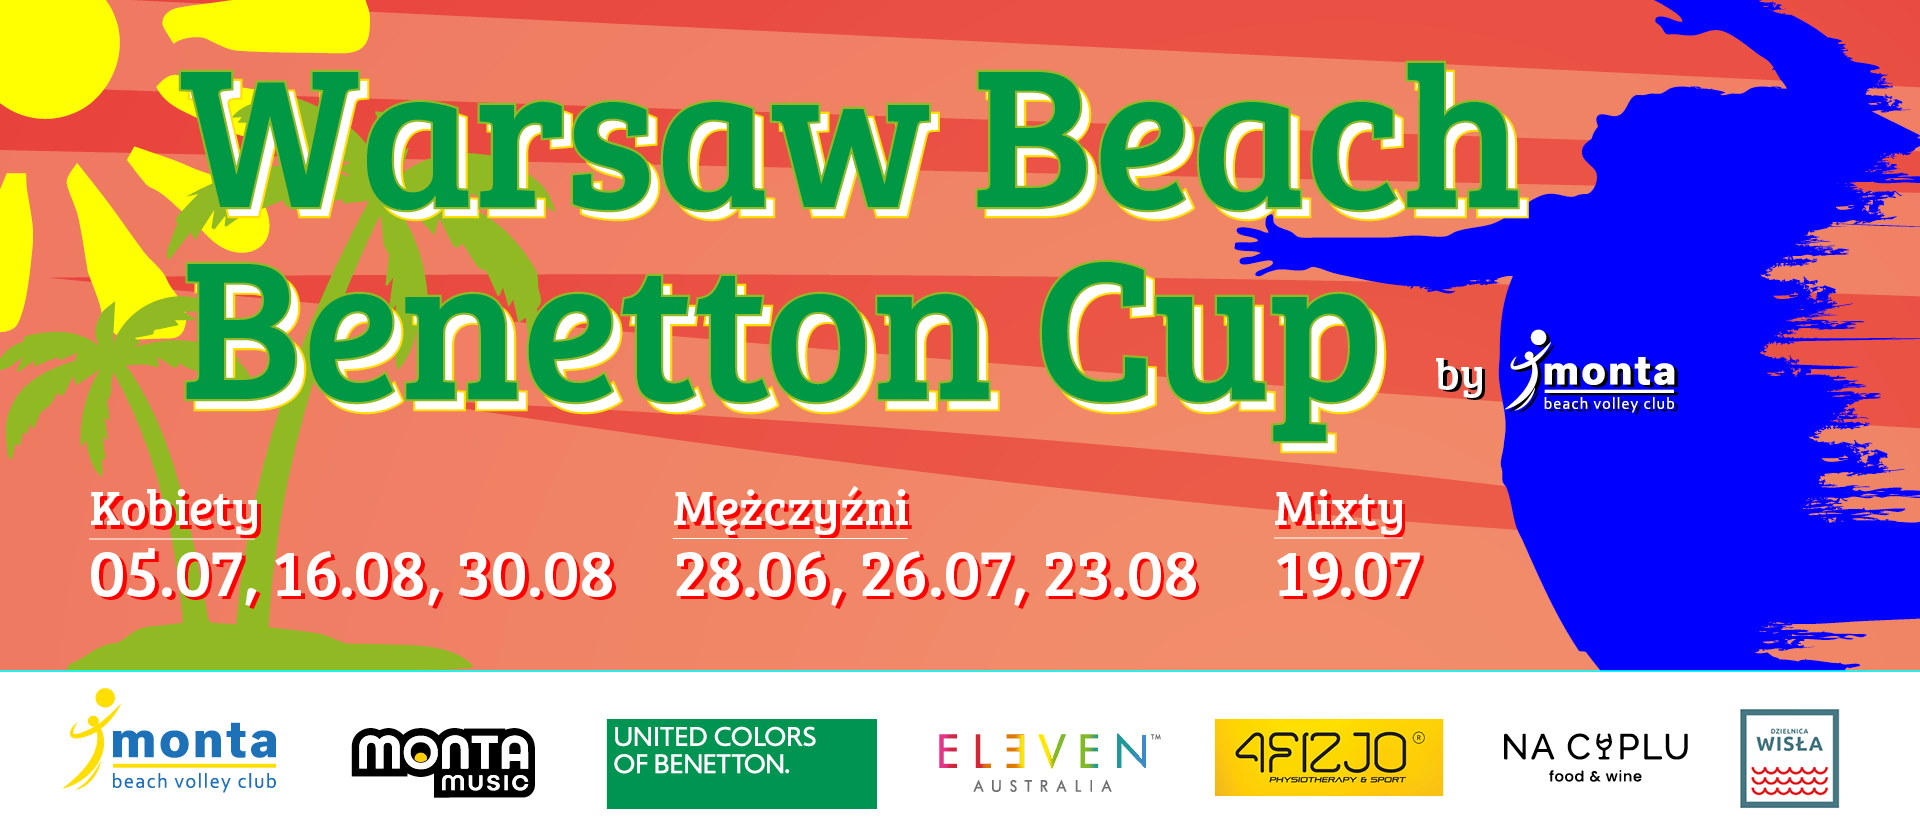 Ranking Warsaw Beach Benetton Cup 2020